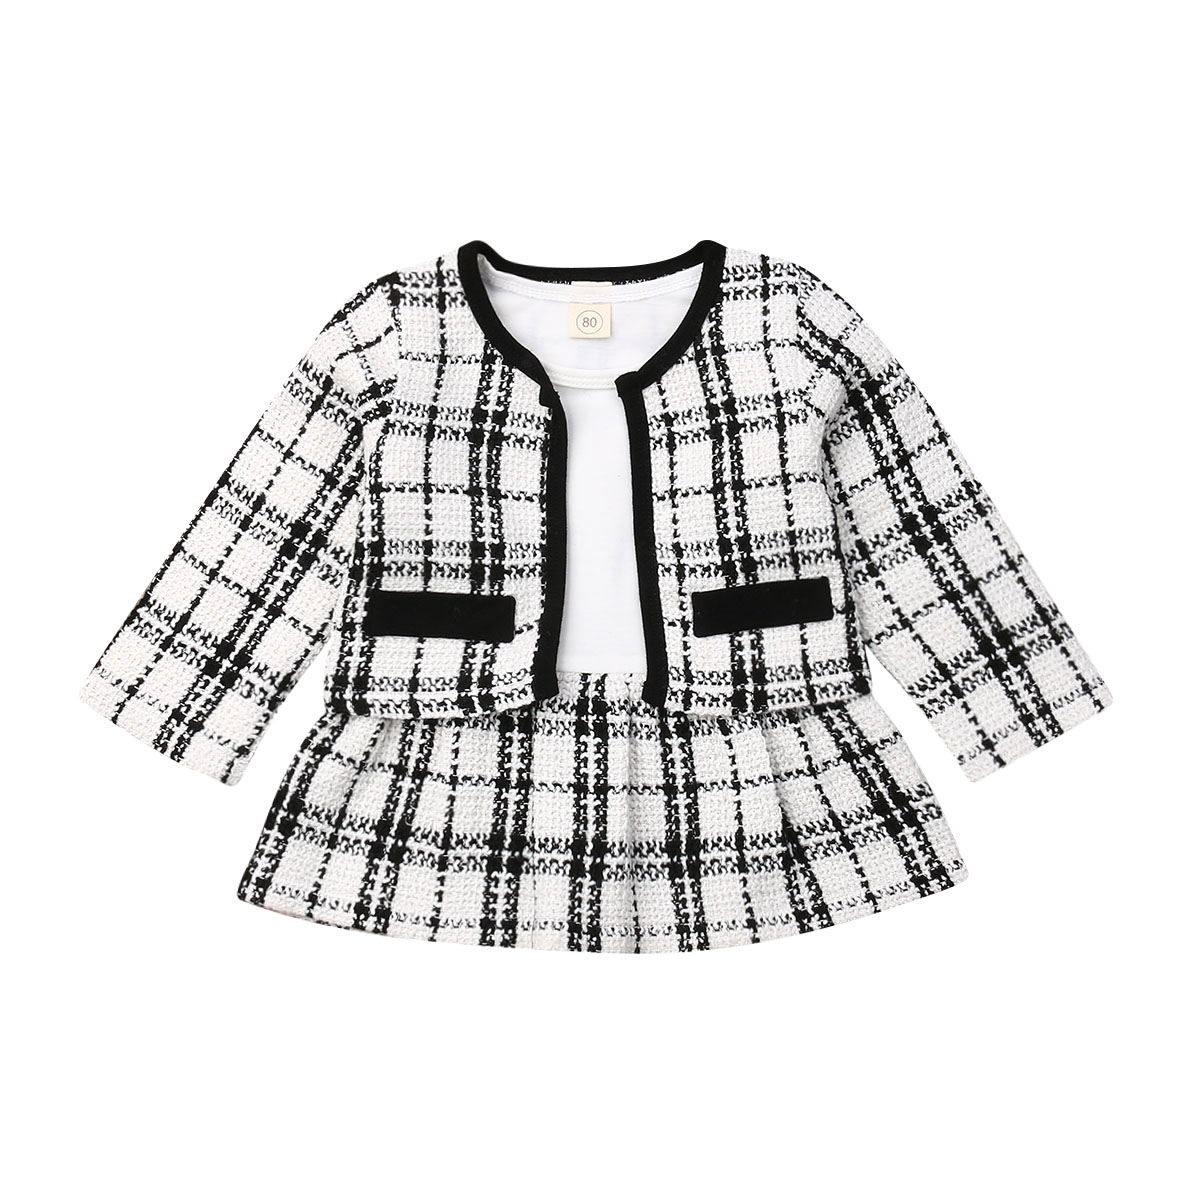 Toddler Baby Girls Clothes Sets Round Neck Long Sleeve Plaid Coat Tops Dress Tutu Skirt Warm Outfit 2Pcs